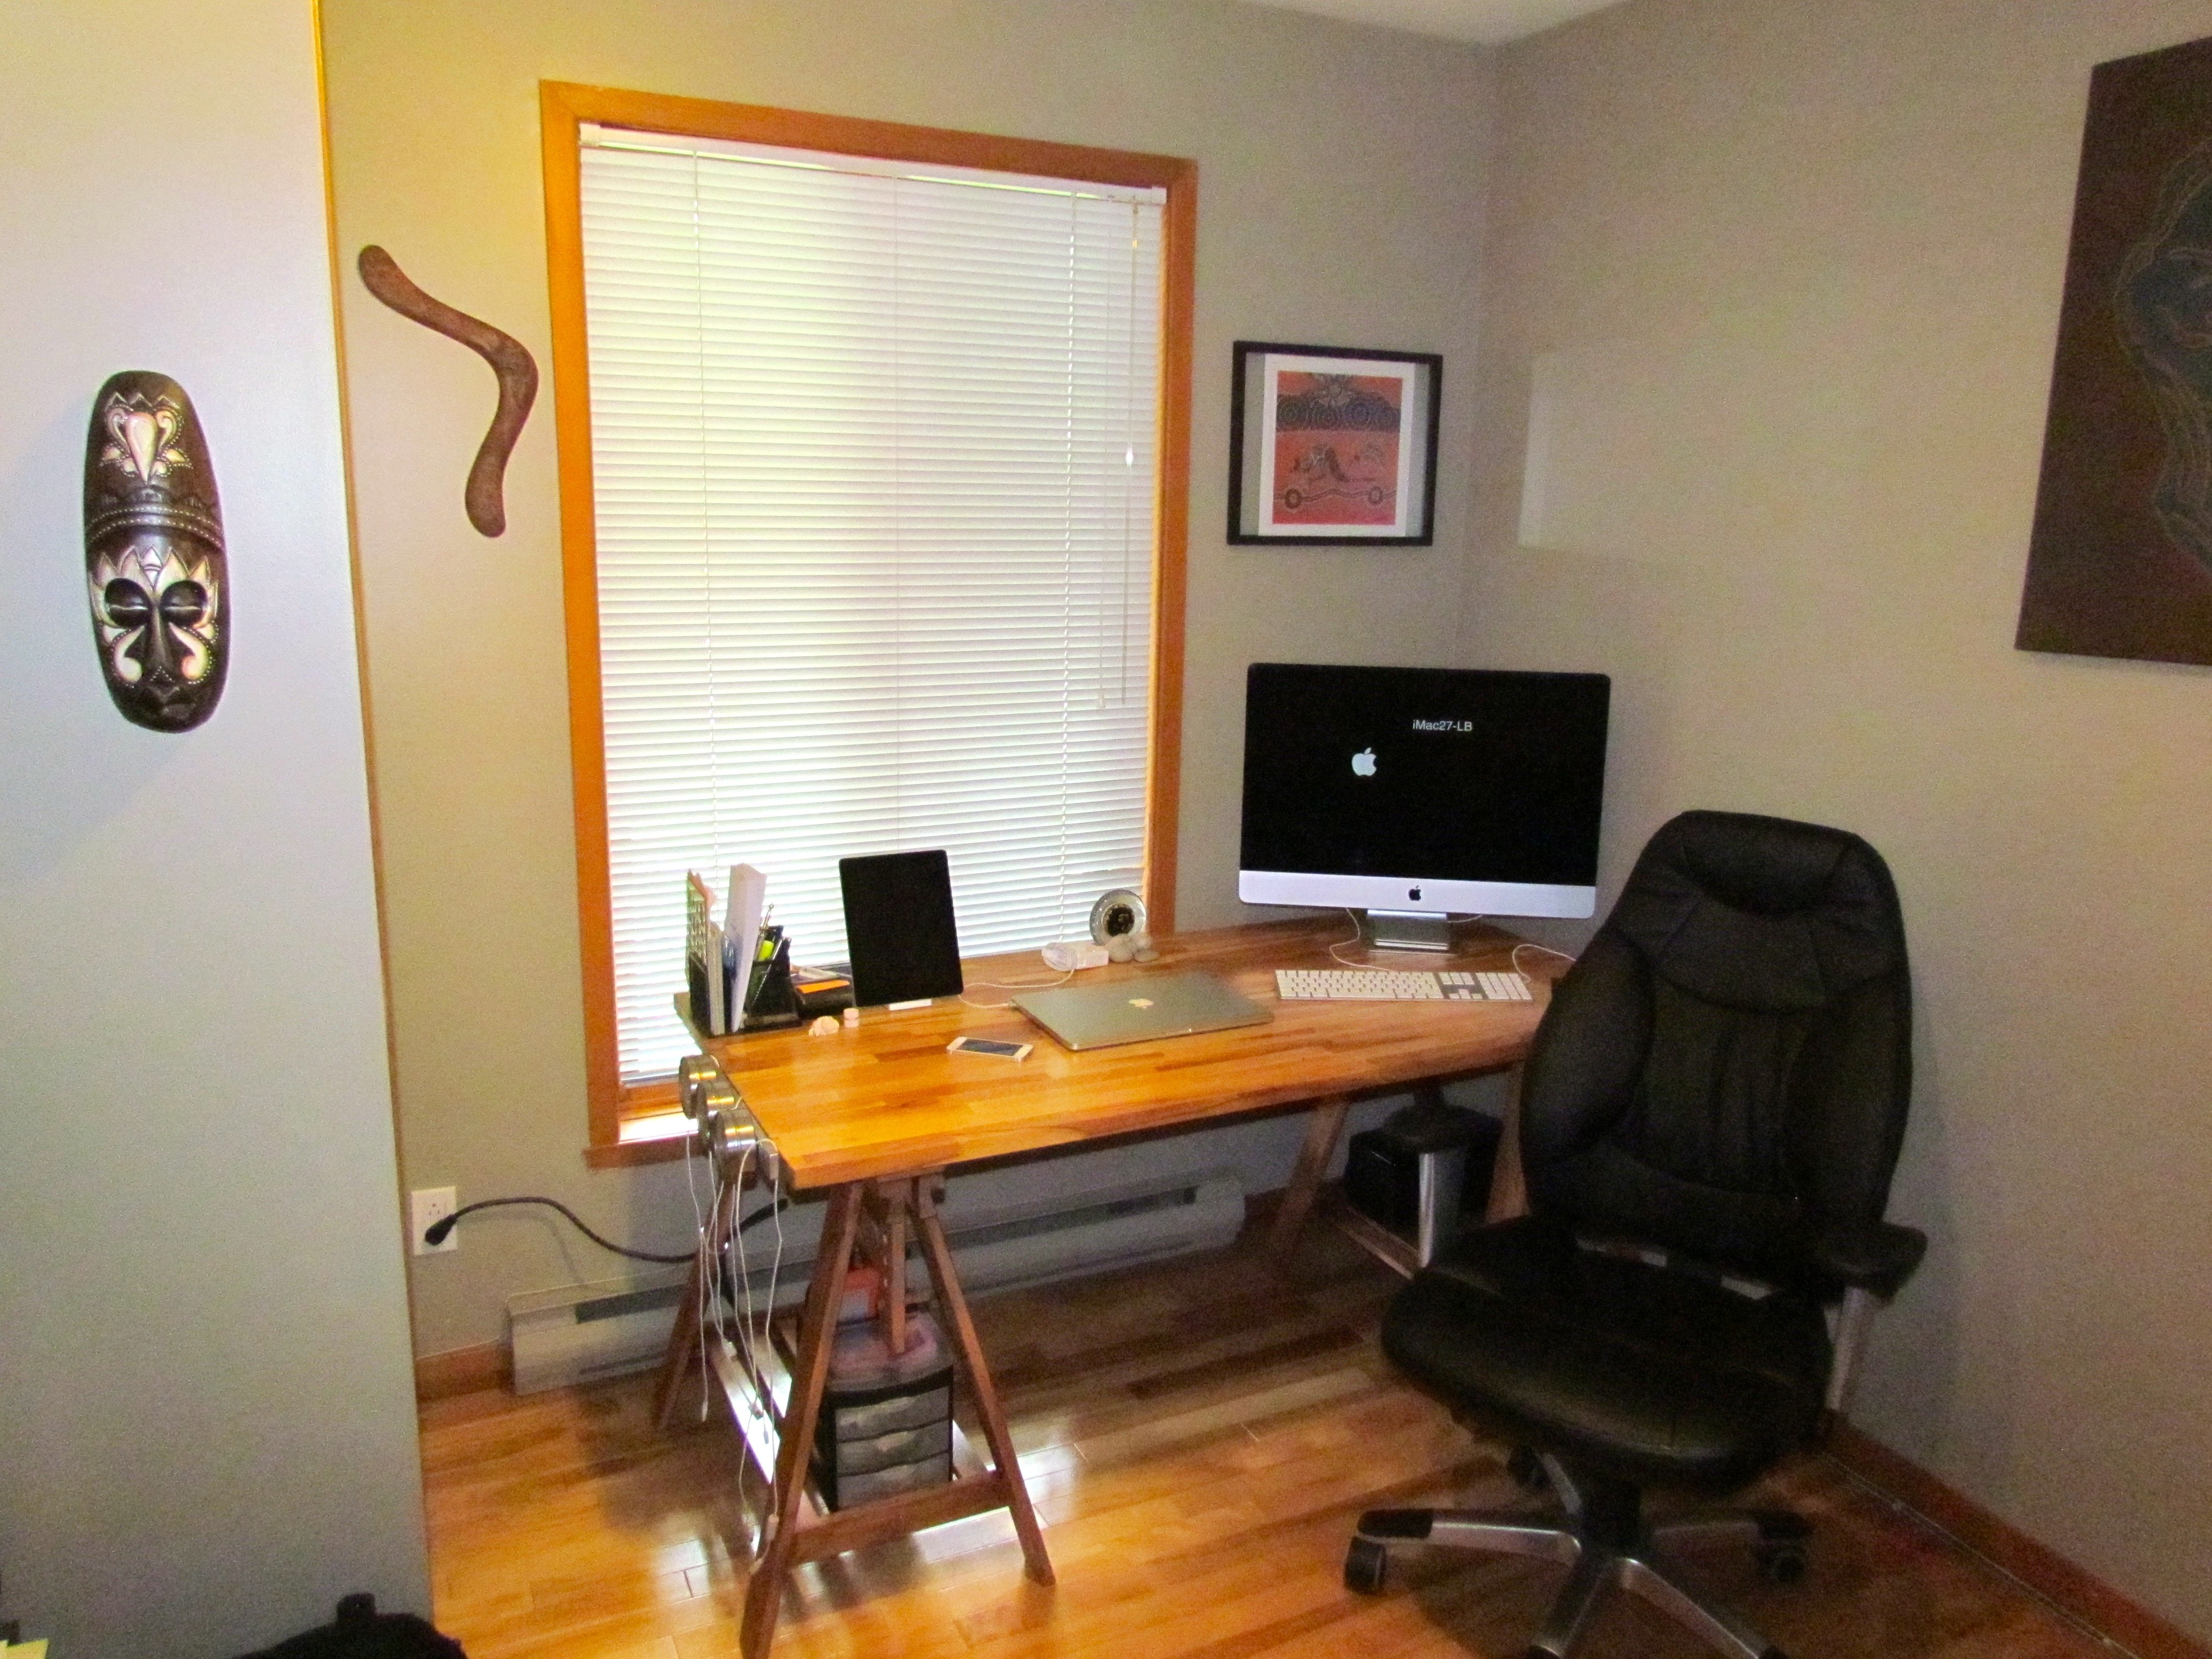 10 Most Popular Work From Home Ideas 2013 an uncluttered and efficient new home working desk ruminating 2020